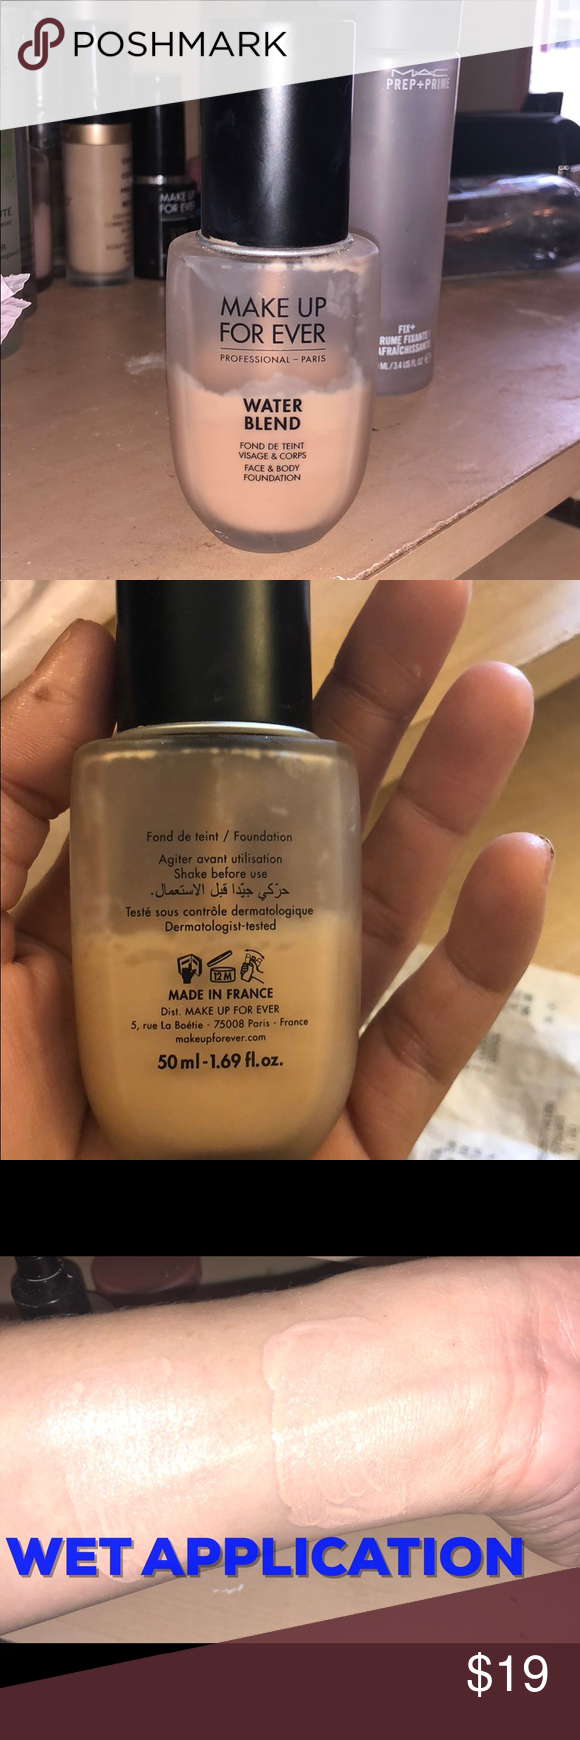 Makeup Forever Water Blend Foundation Y325 Y325 is Flesh